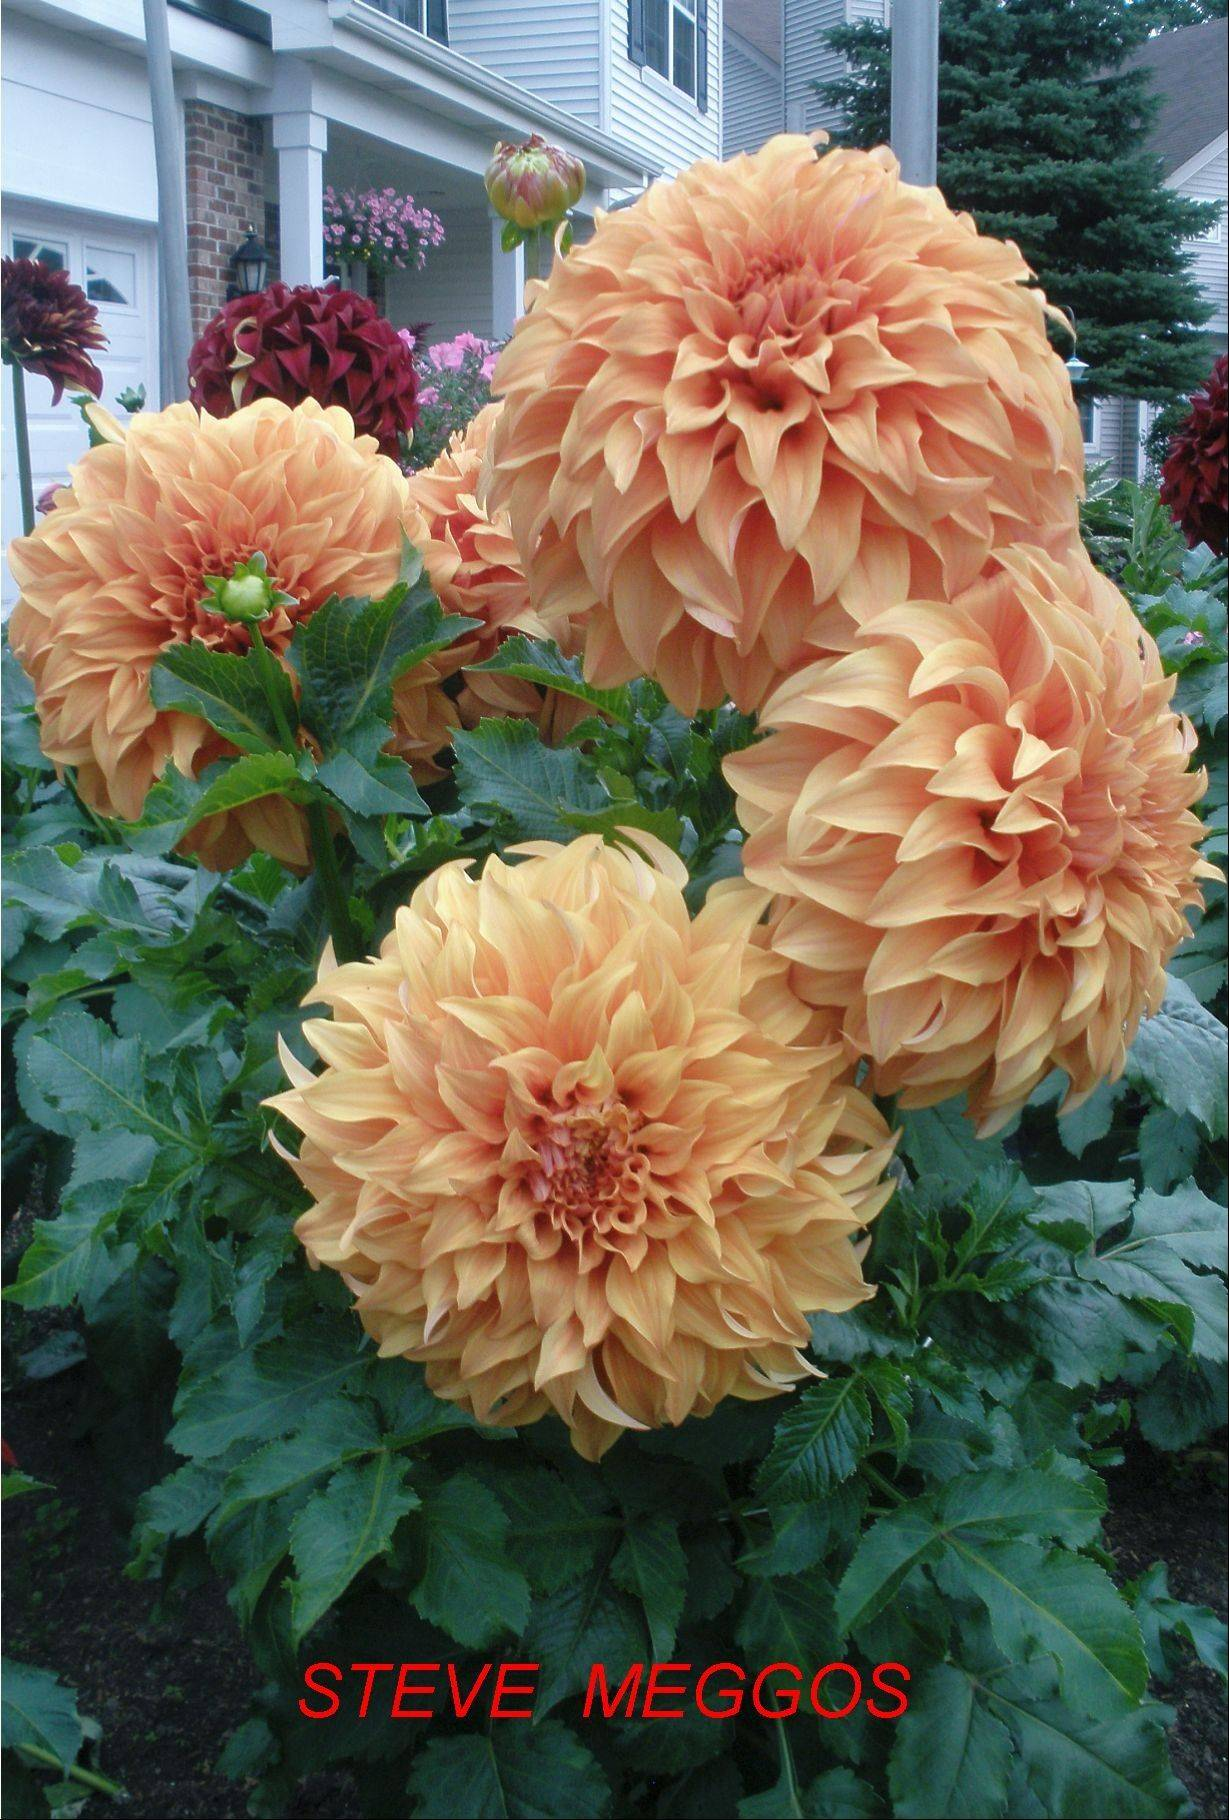 Steve Meggos is finally naming a dahlia after himself.